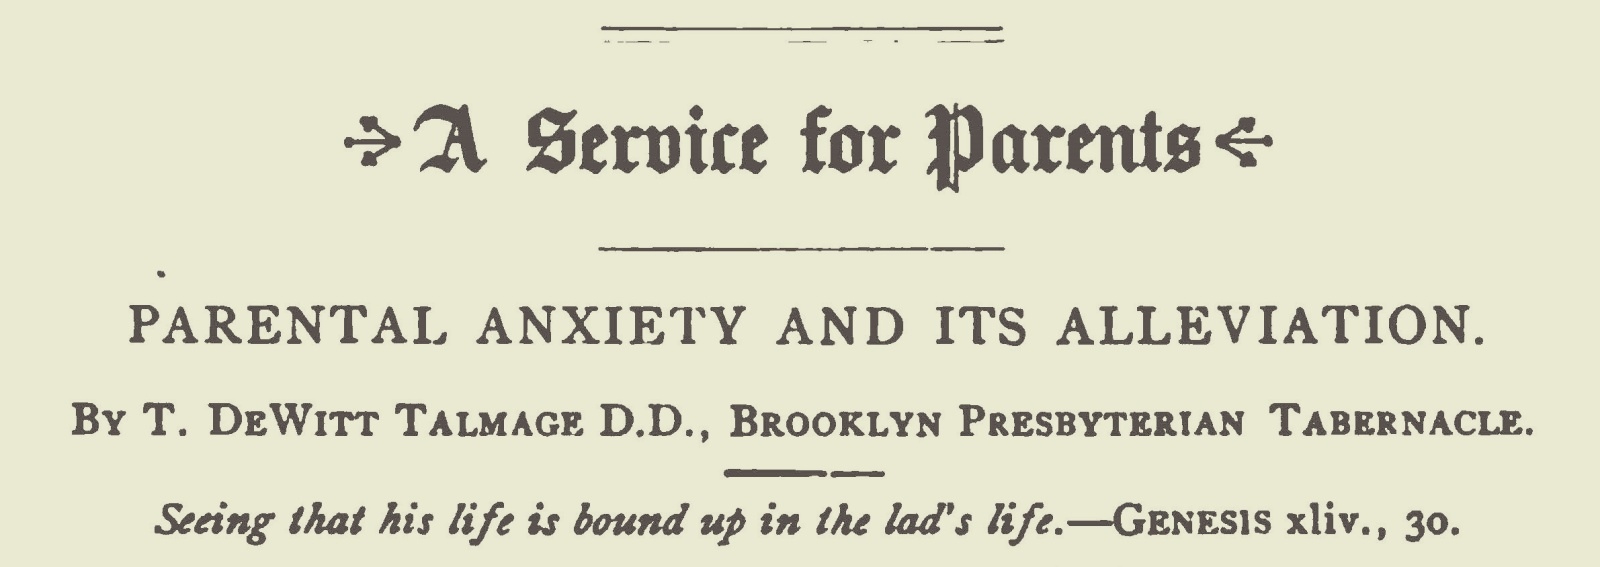 Talmage, Thomas De Witt, Parental Anxiety and Its Alleviation Title Page.jpg